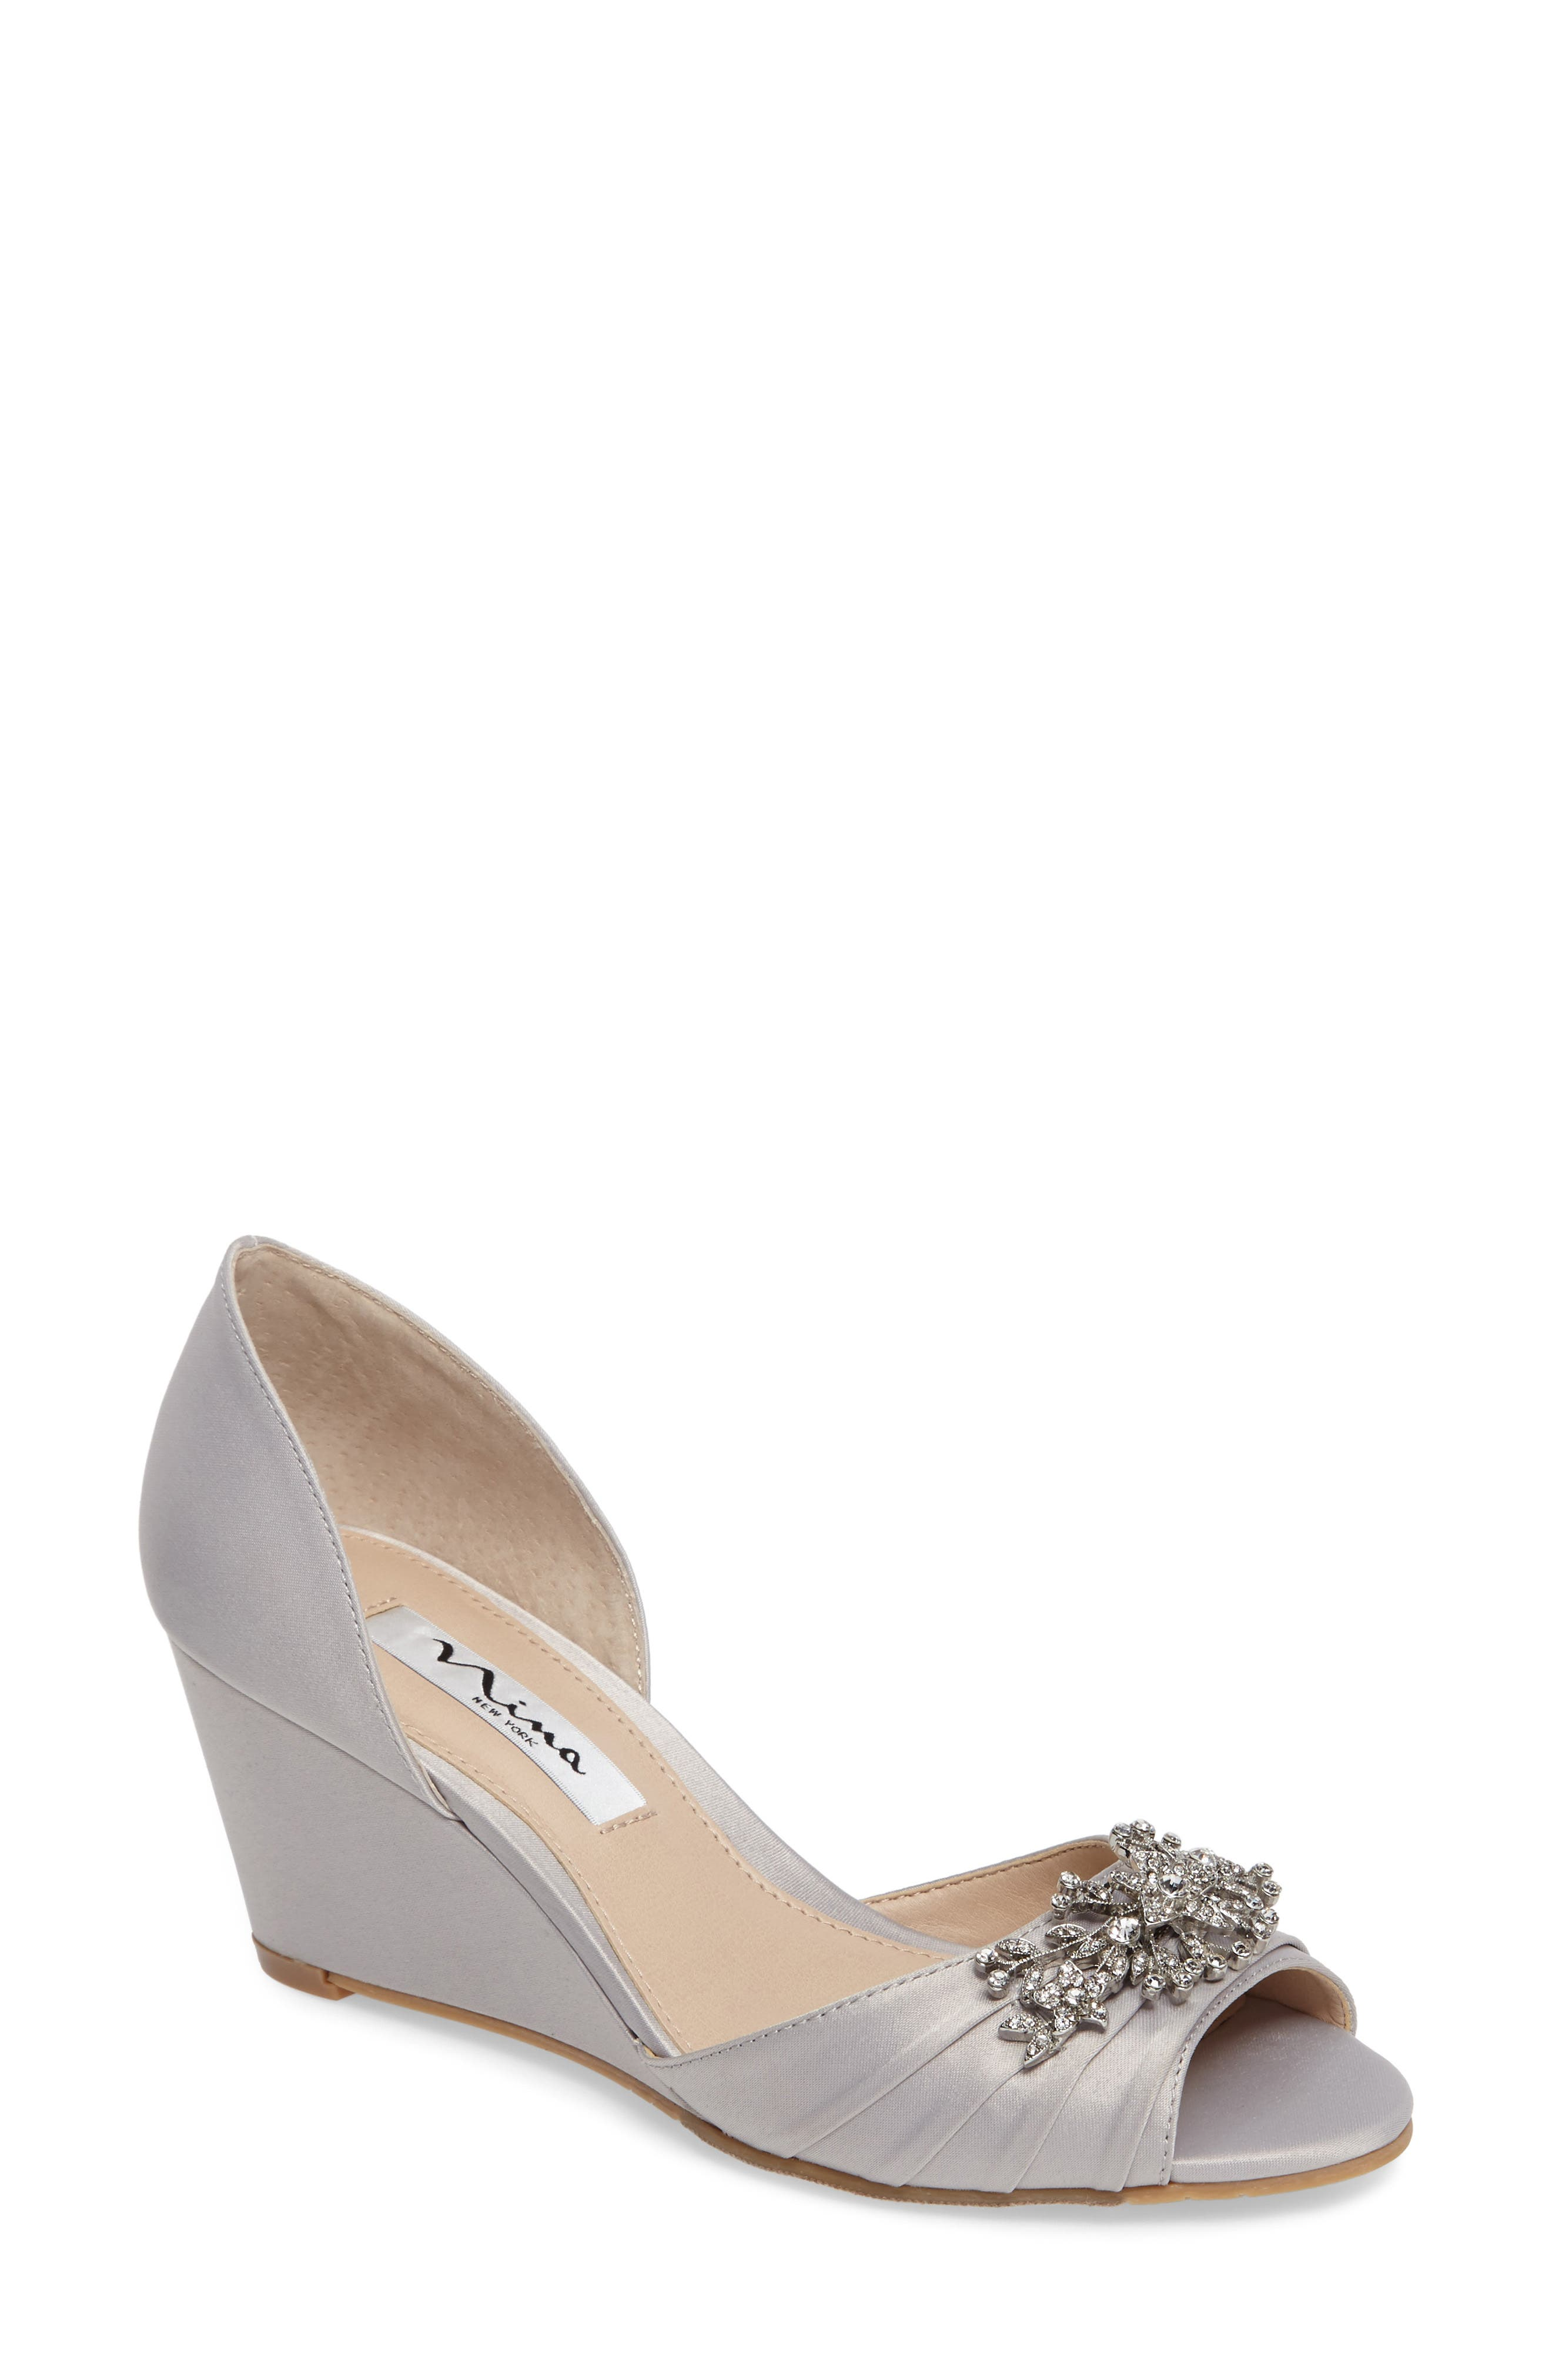 Emiko d'Orsay Wedge Pump,                             Main thumbnail 1, color,                             SILVER SATIN